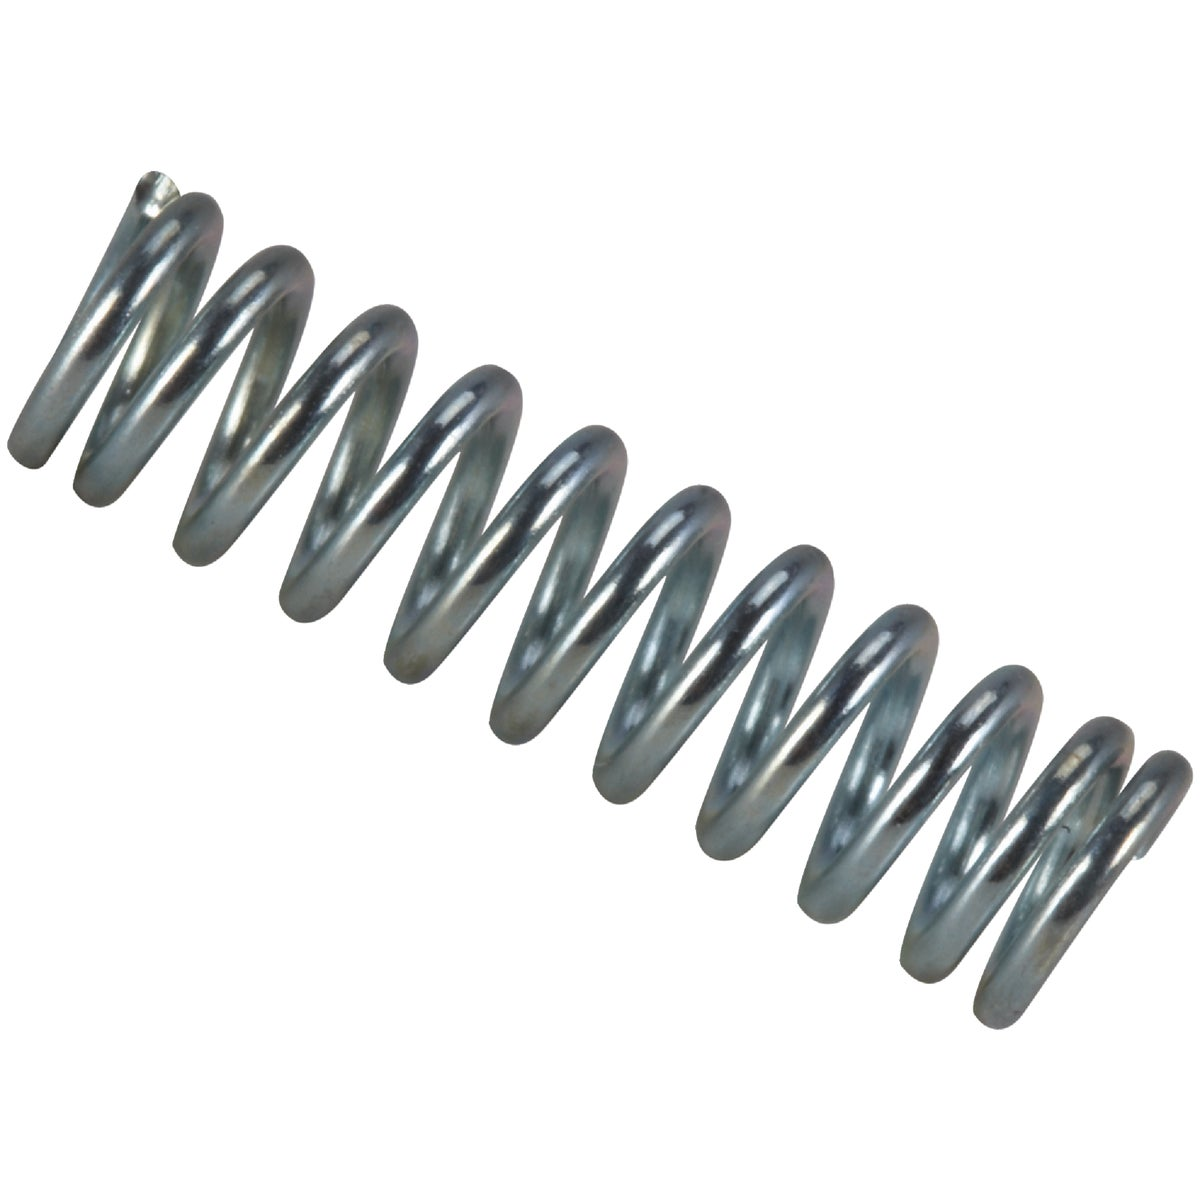 COMPRESSION SPRING - C-752 by Century Spring Corp